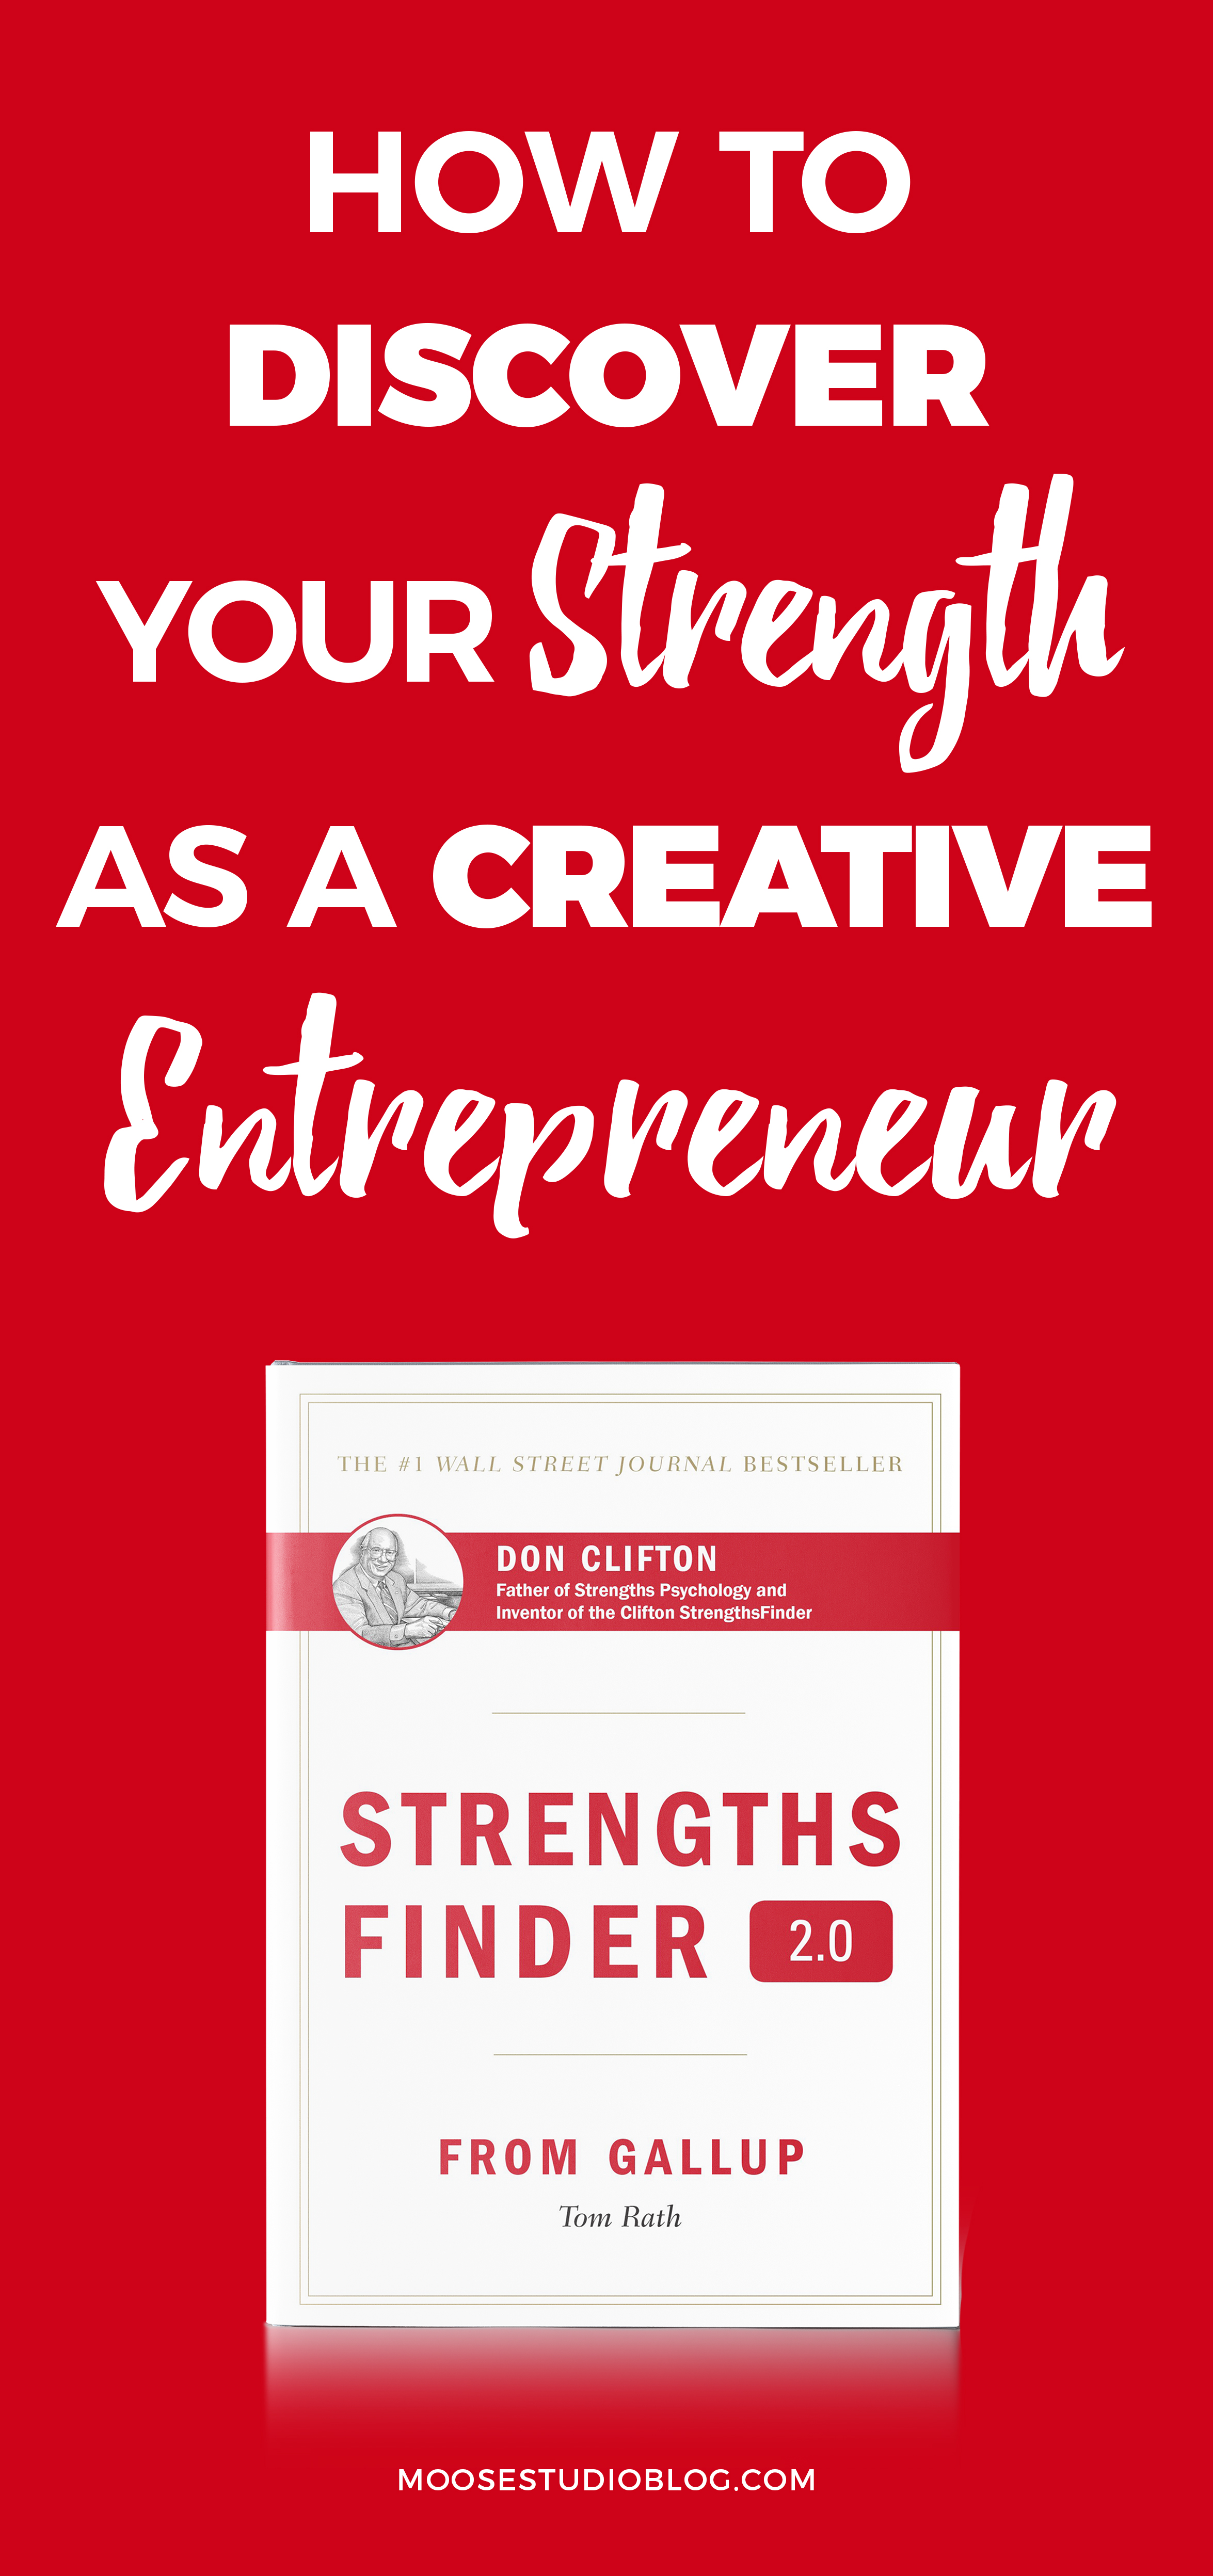 How To Discover Your Top Strengths As A Creative Entrepreneur